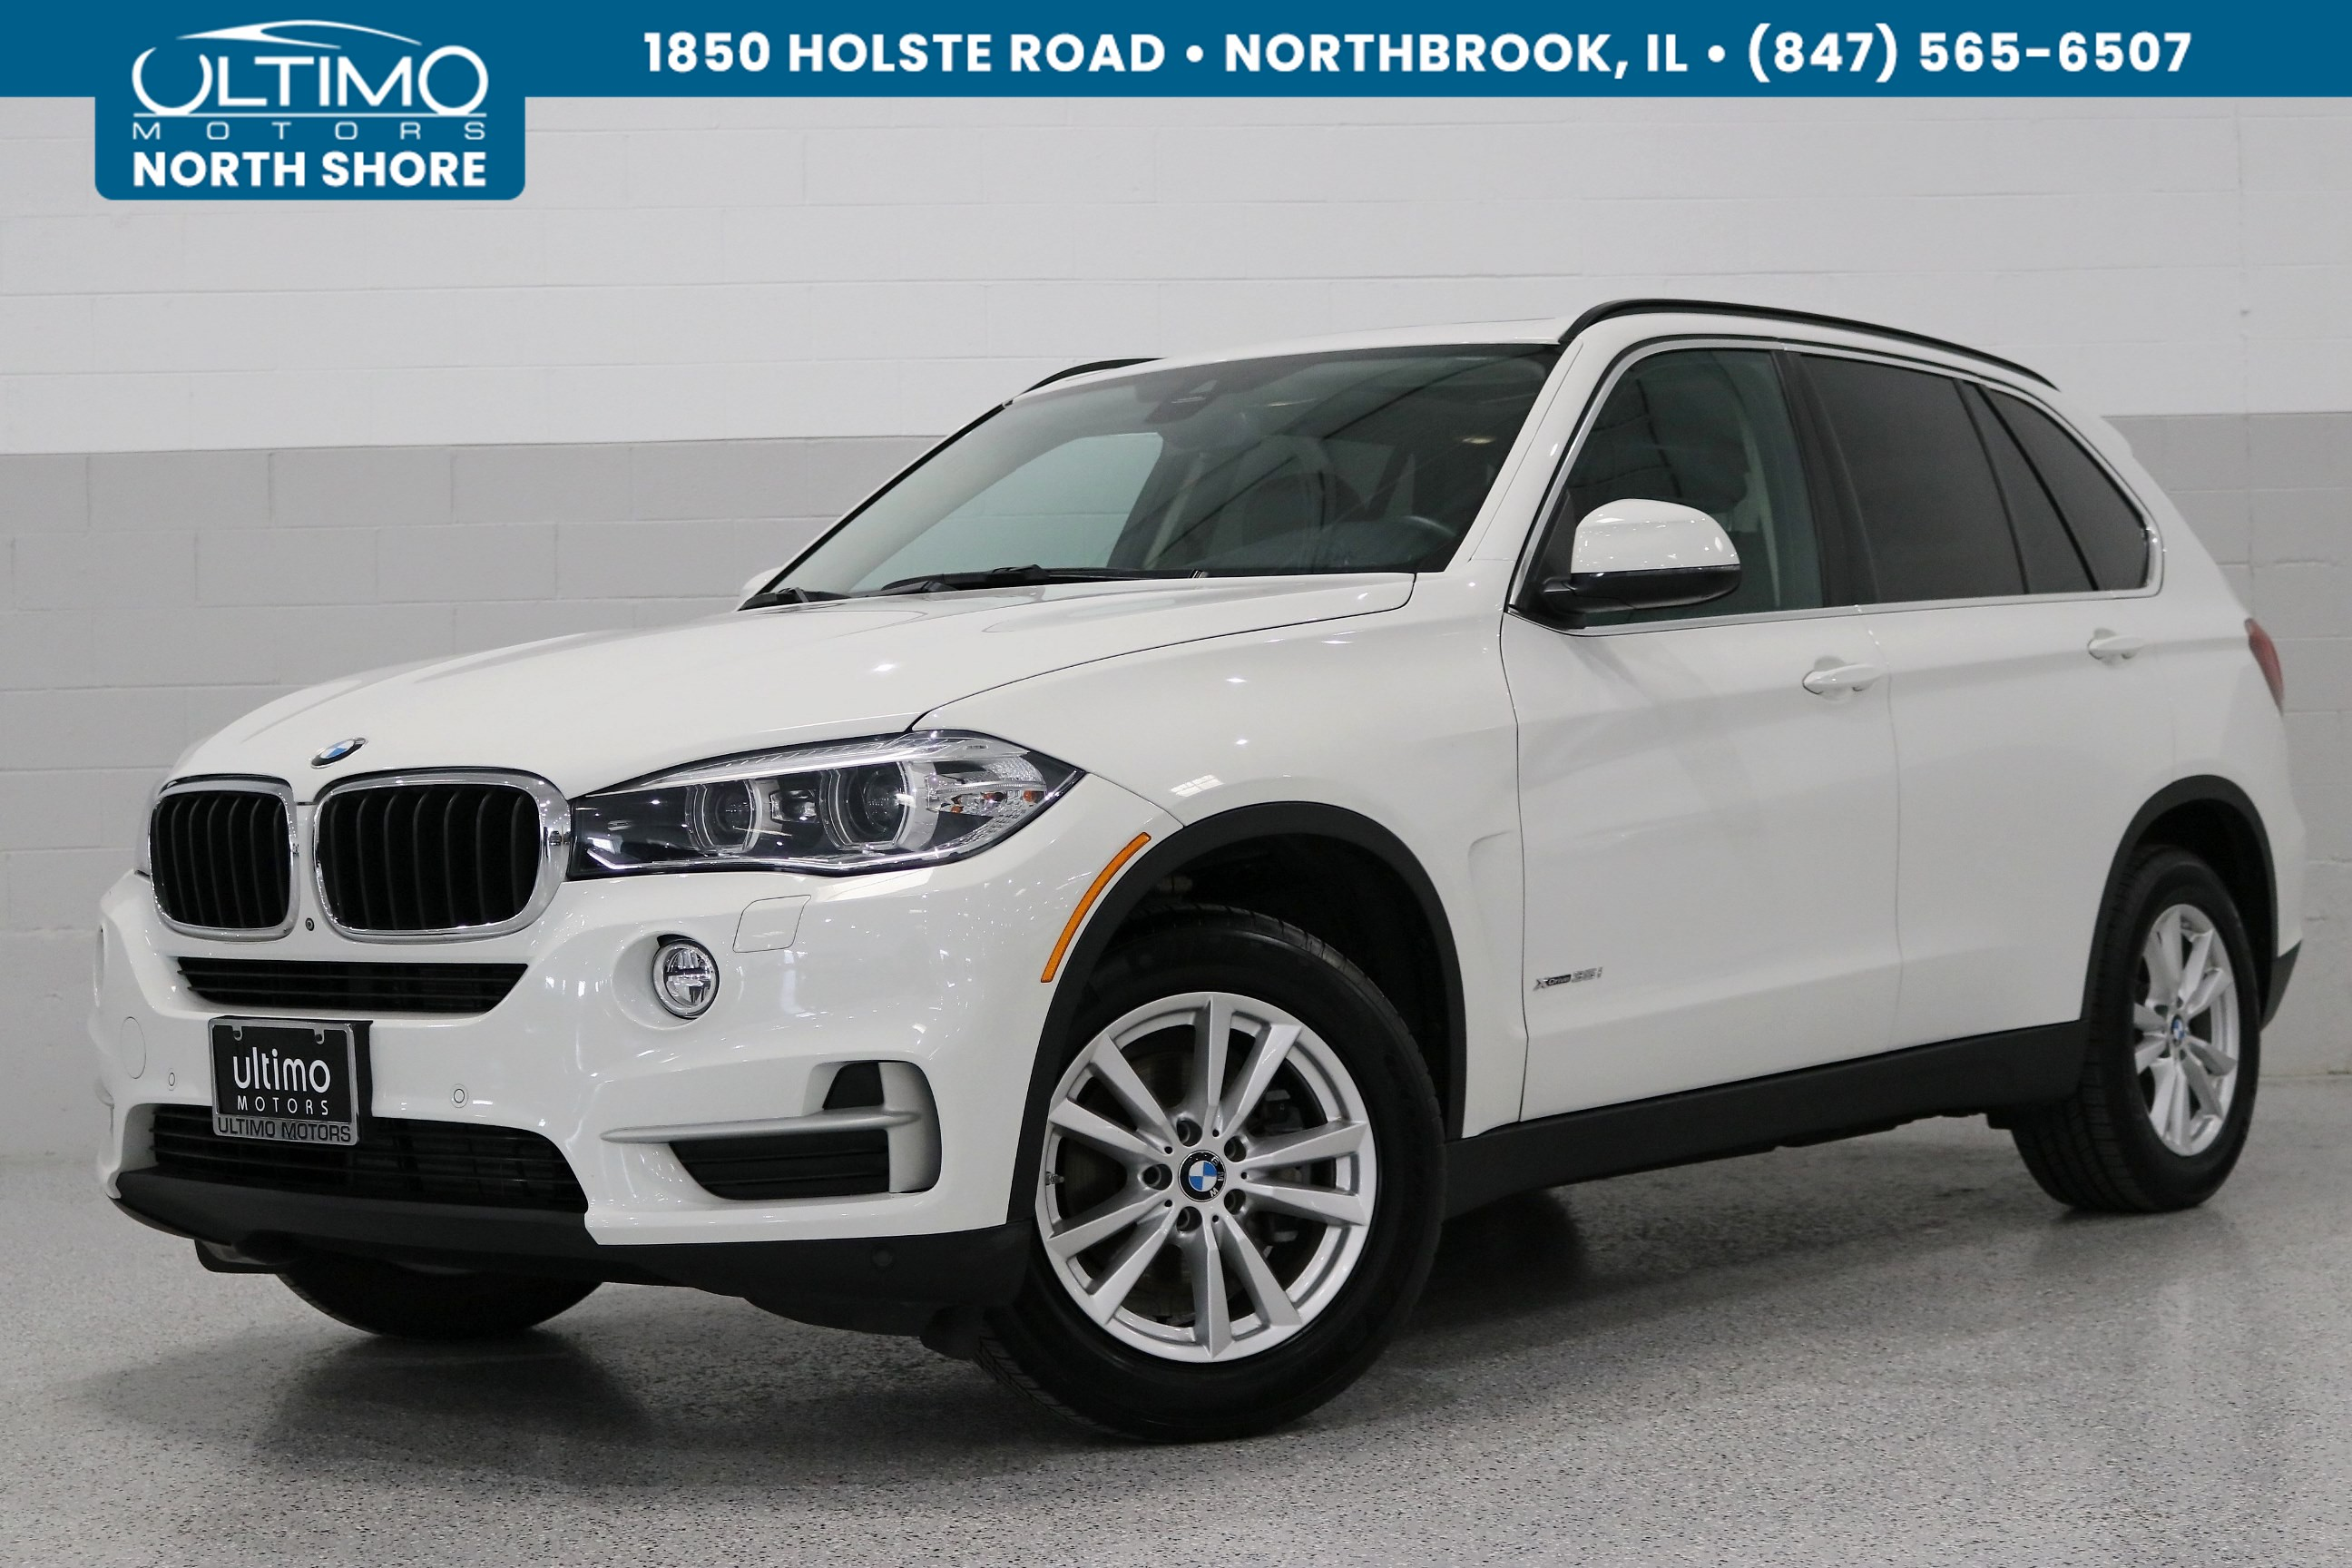 Pre-Owned 2015 BMW X5 xDrive35i, Assist+, Premium, Hi-fi Sound, Cold Weather.